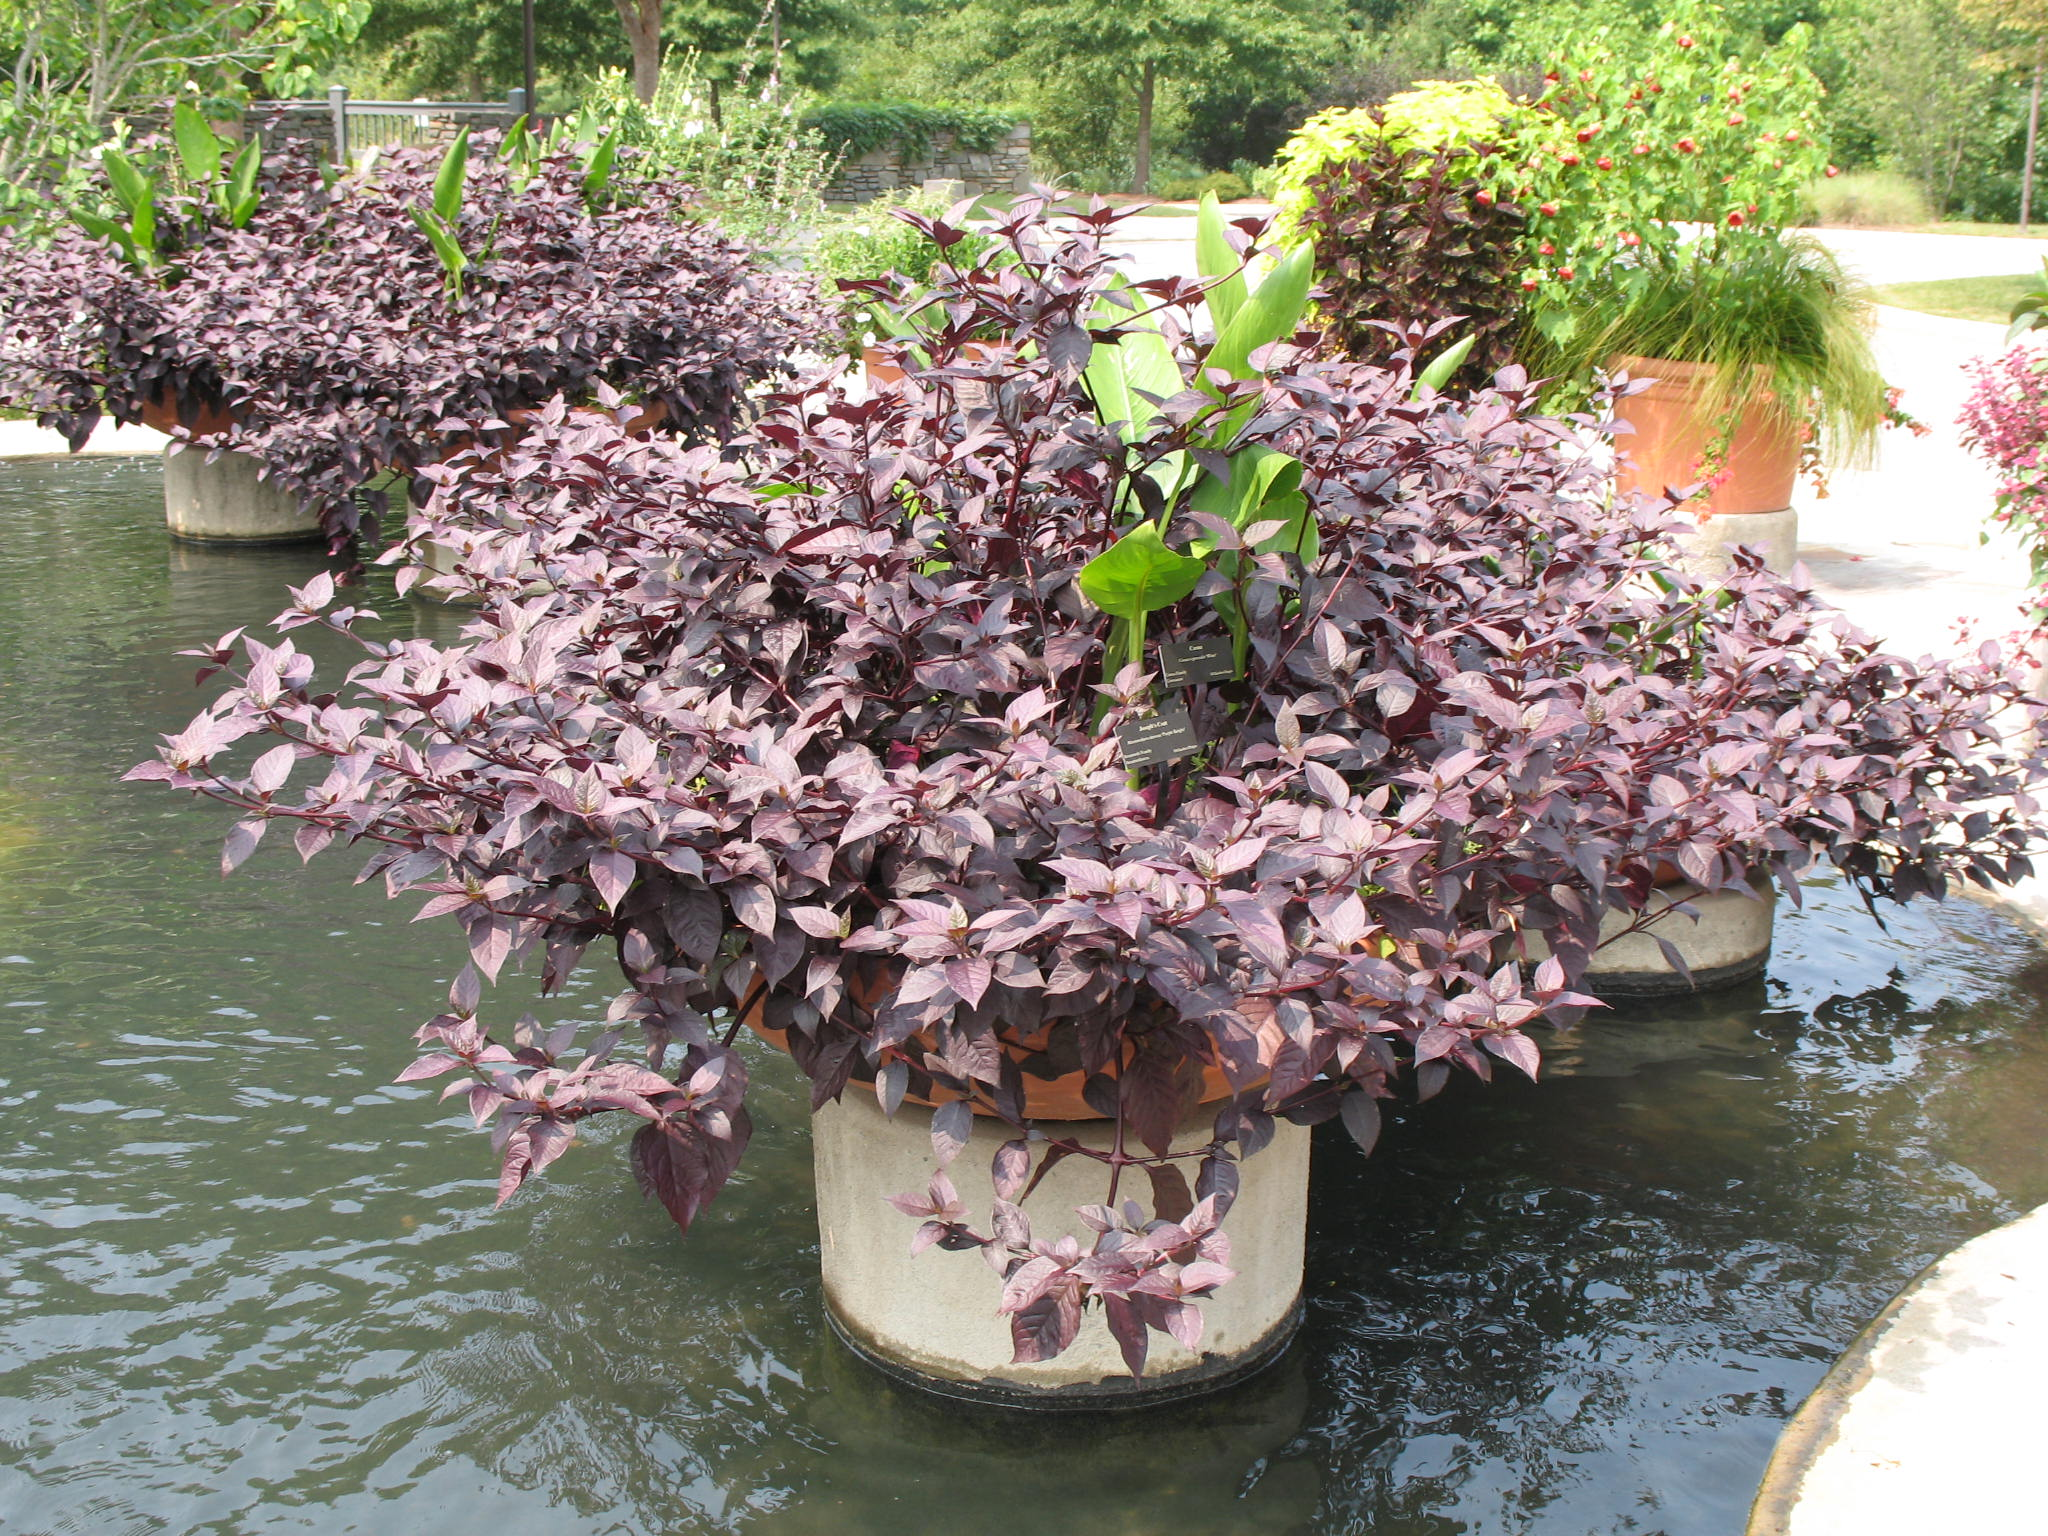 Alternanthera dentata 'Purple Knight'   / Alternanthera dentata 'Purple Knight'